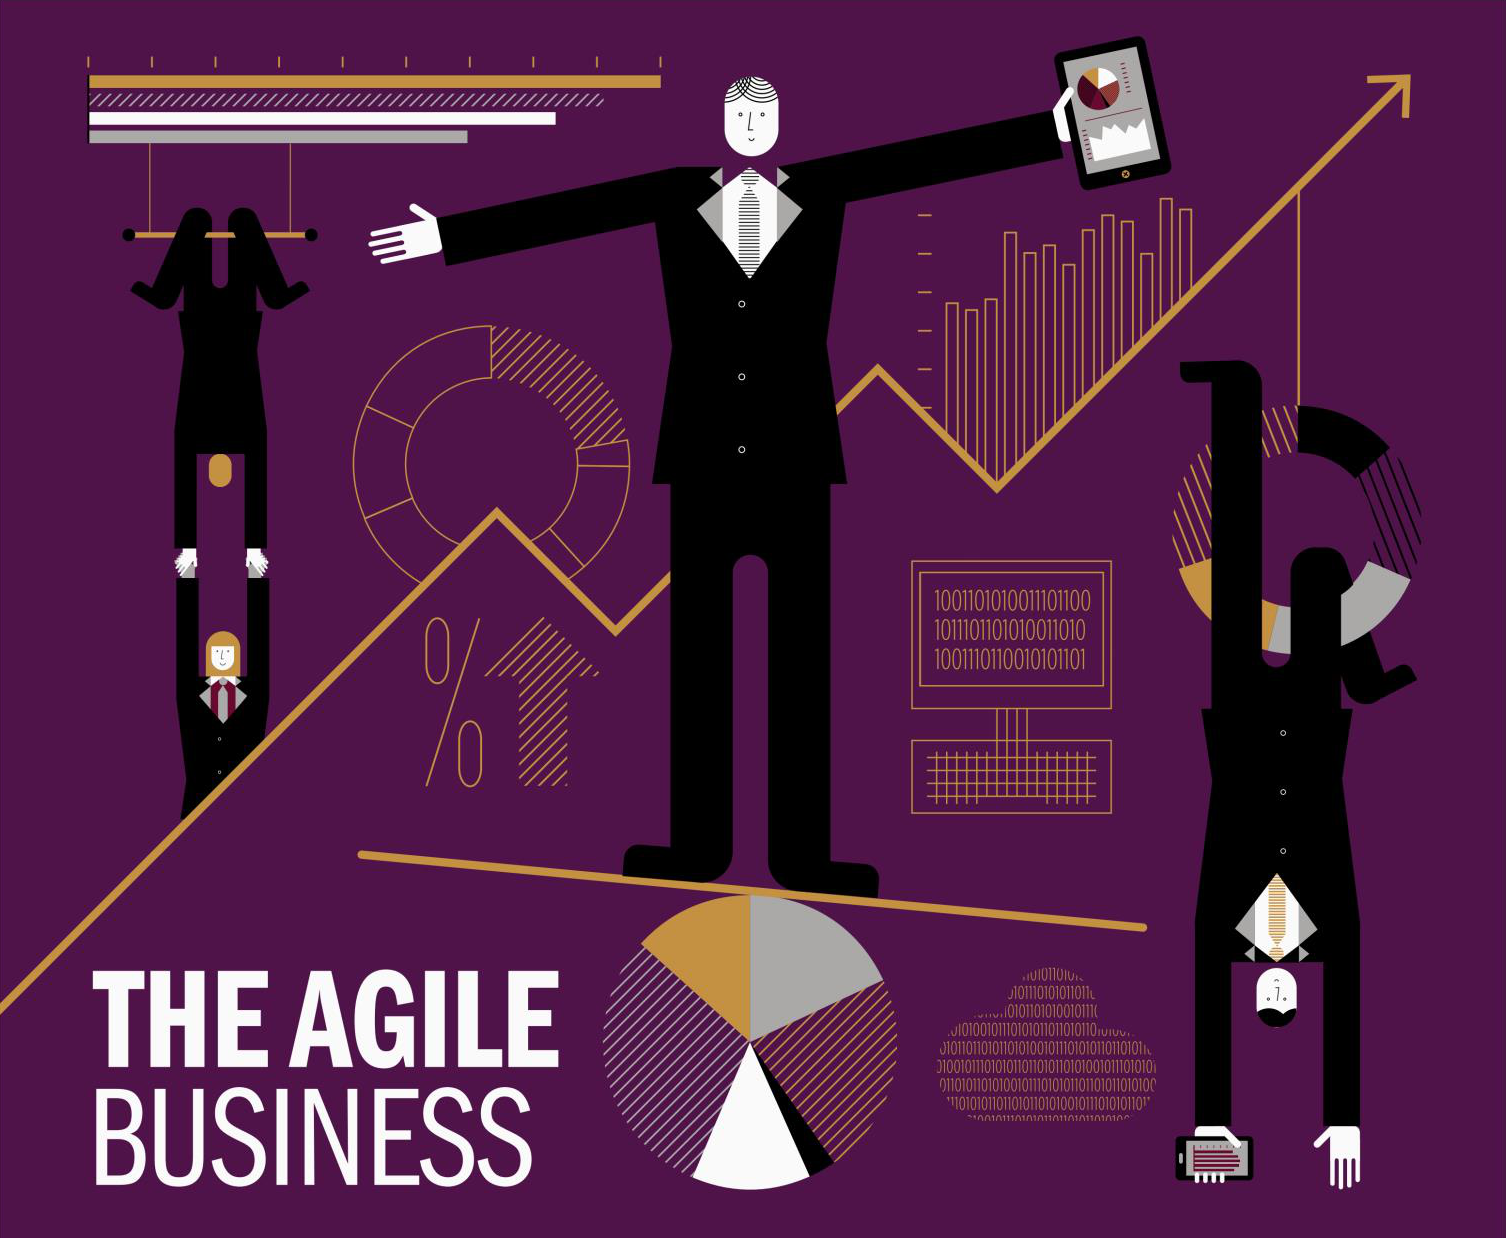 The Agile Business by Raconteur